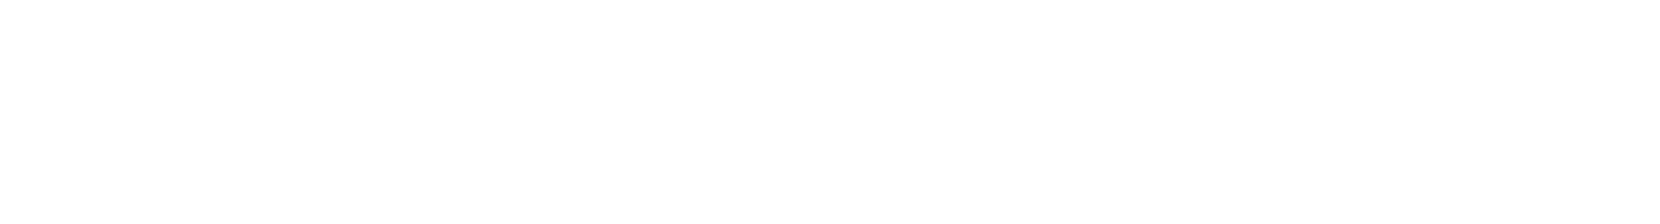 up to 30% off dining sale + free shipping. prices reflect discount